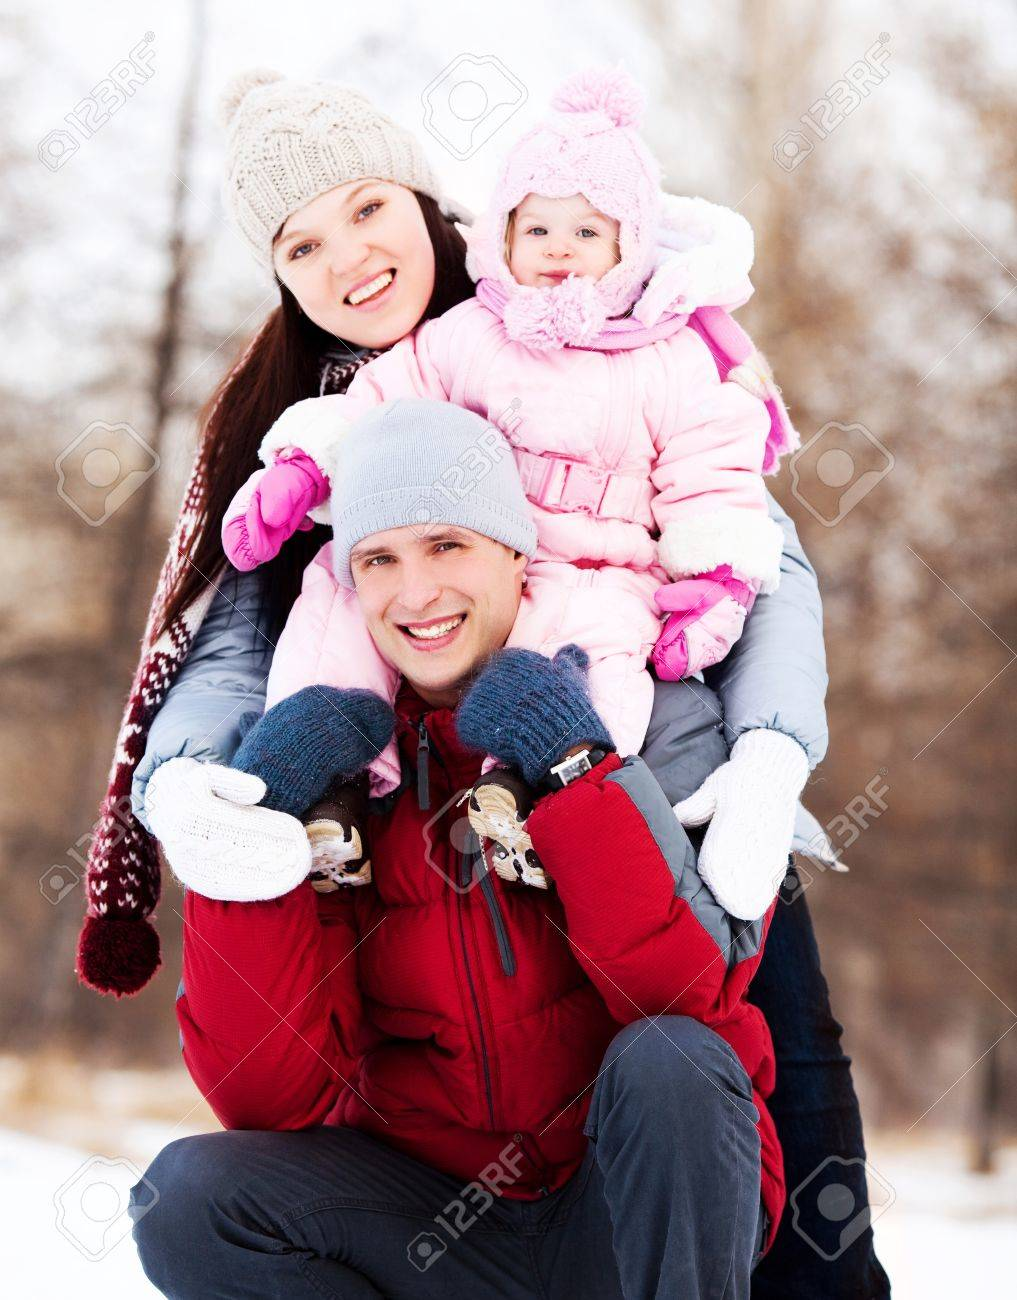 happy young father, mother and their daughter spending time outdoor in the winter park (focus on the man) Stock Photo - 11557156